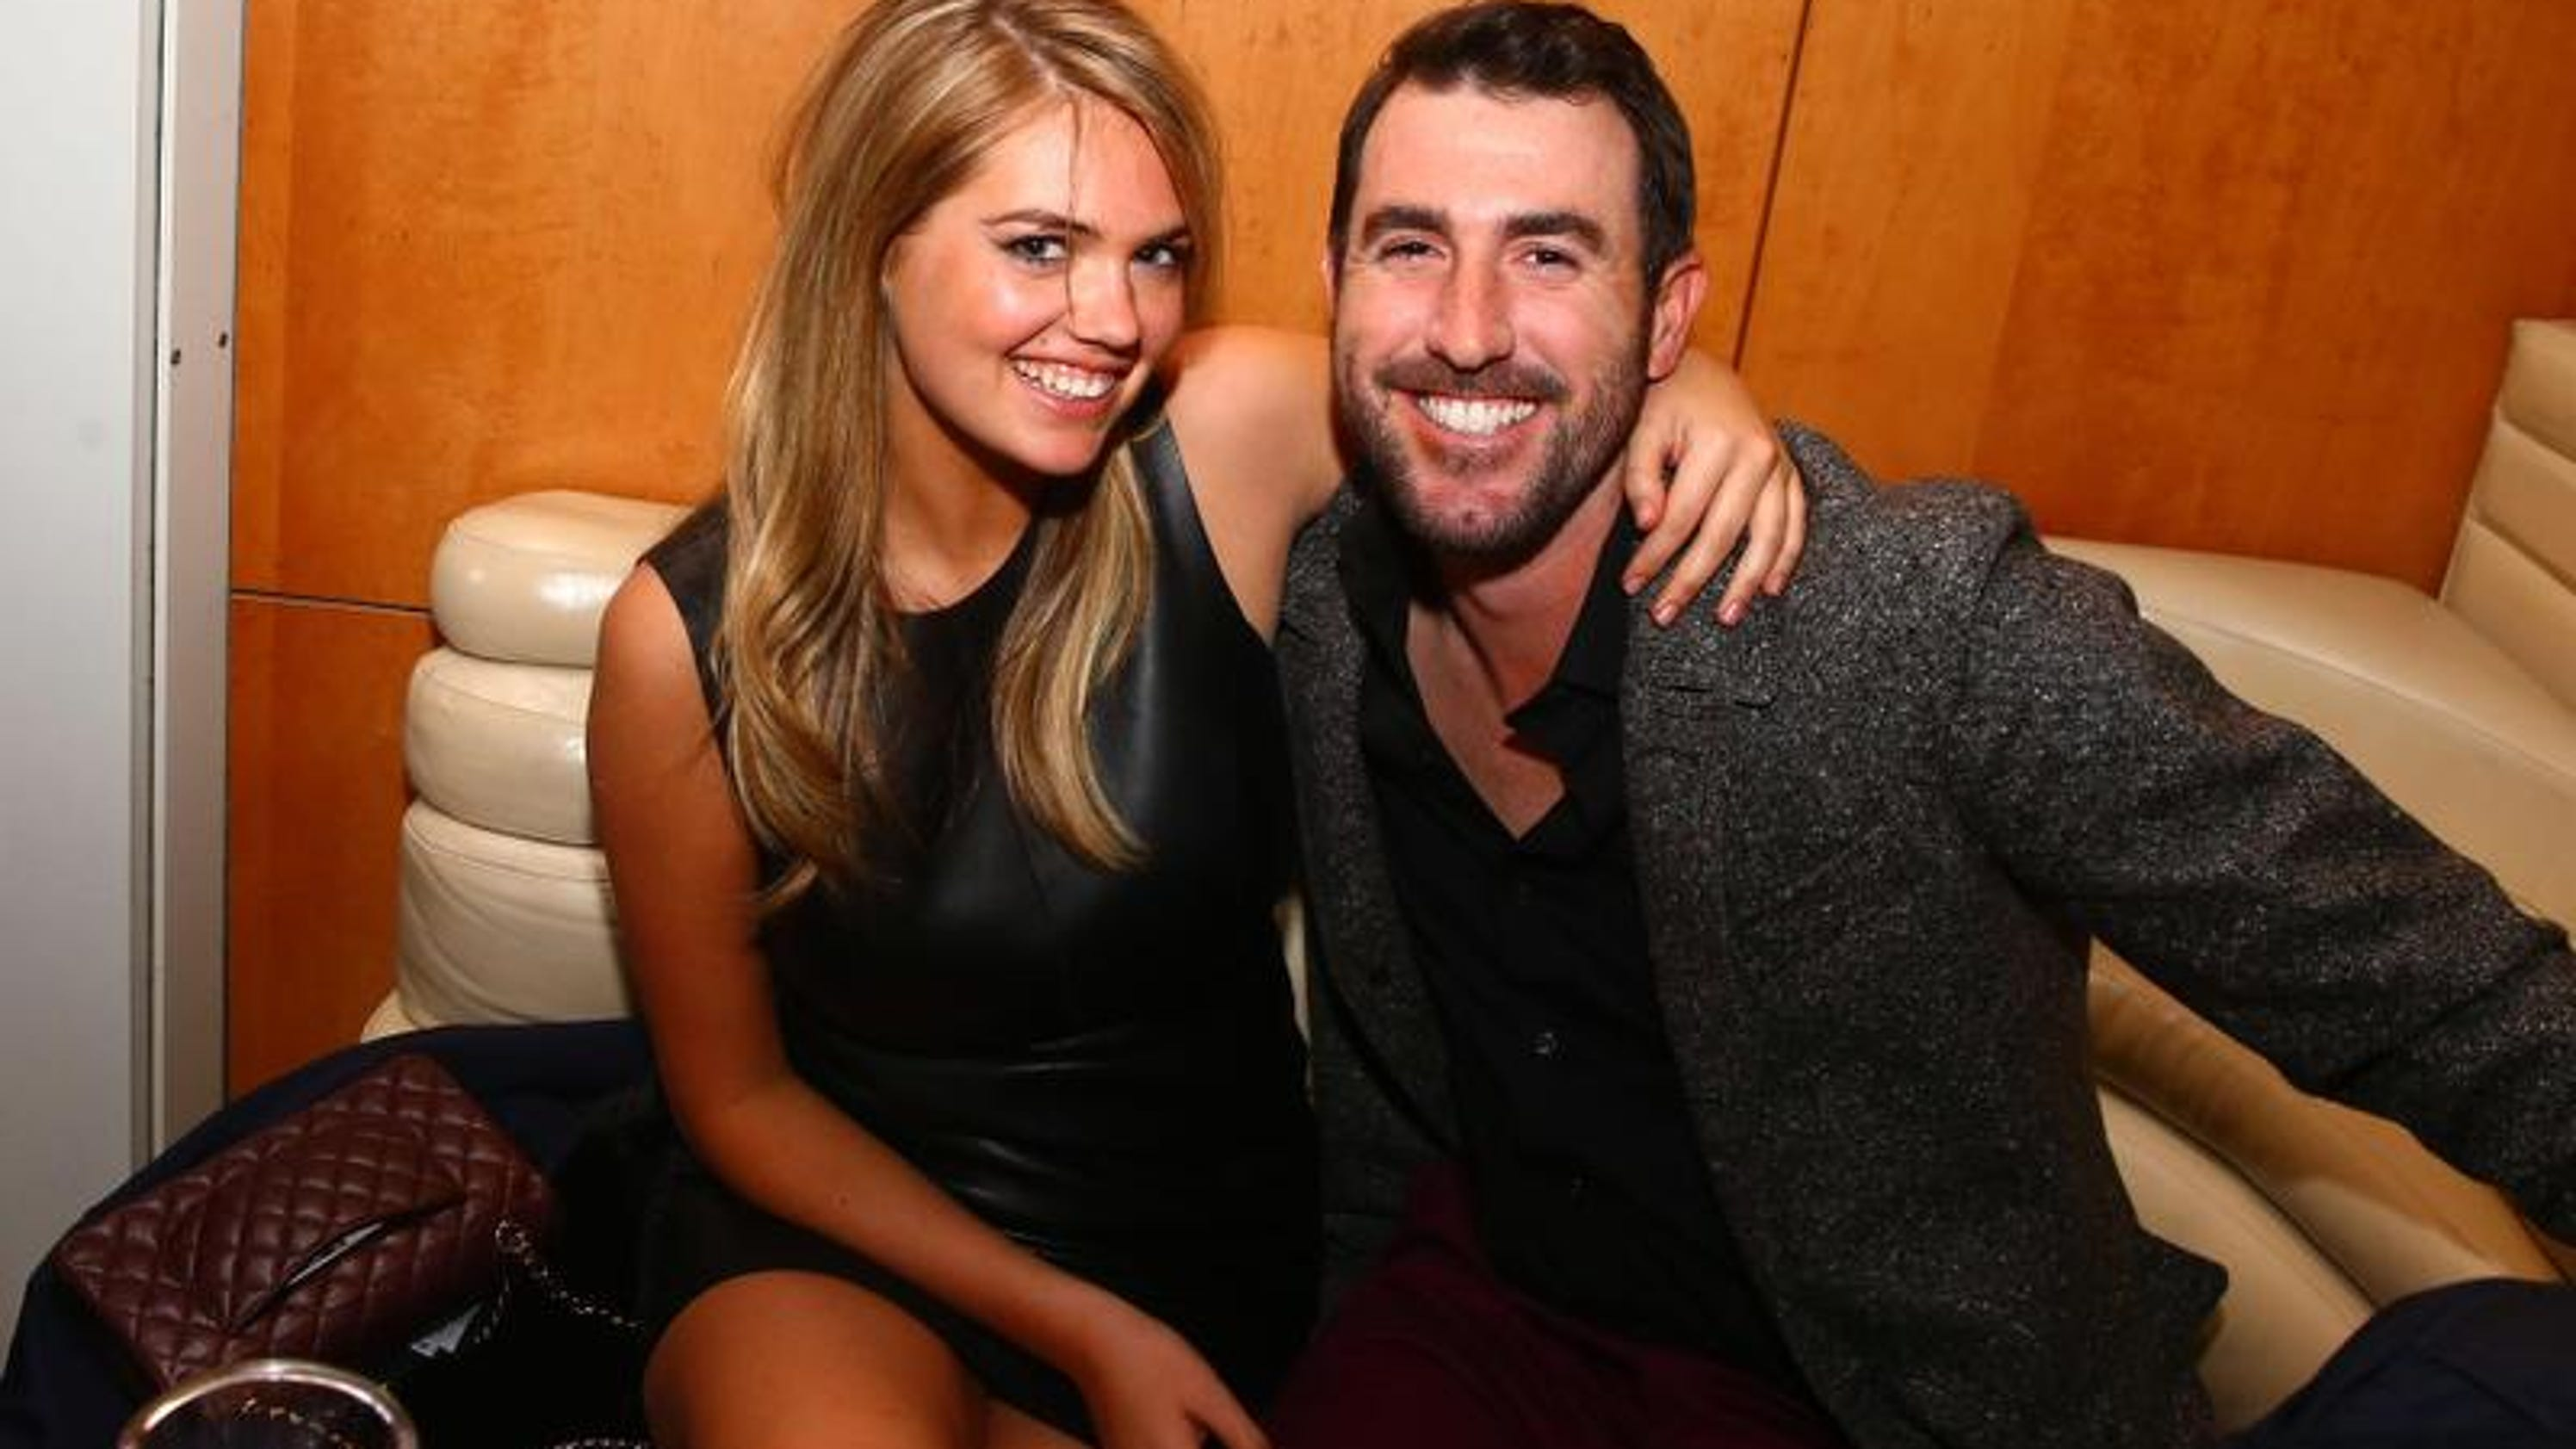 kate upton vows legal action after leaked nude photos with justin